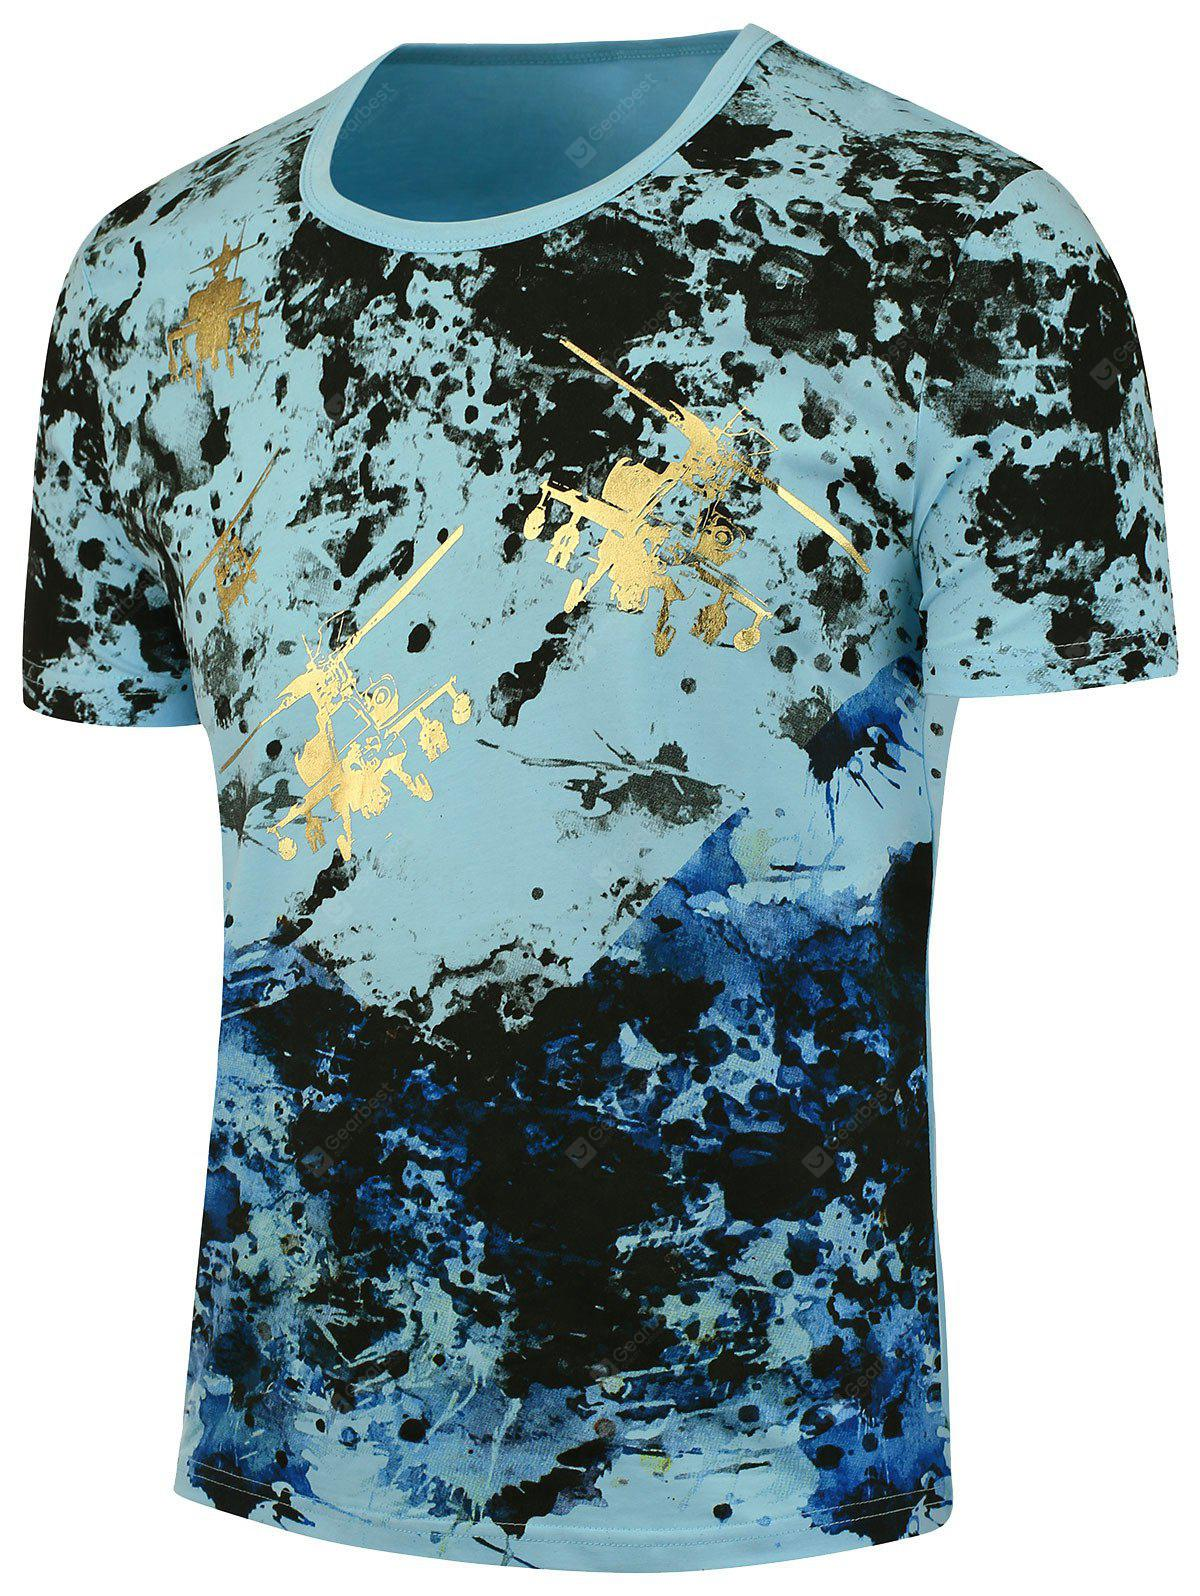 BLUE Short Sleeves Splashed Paint Tee